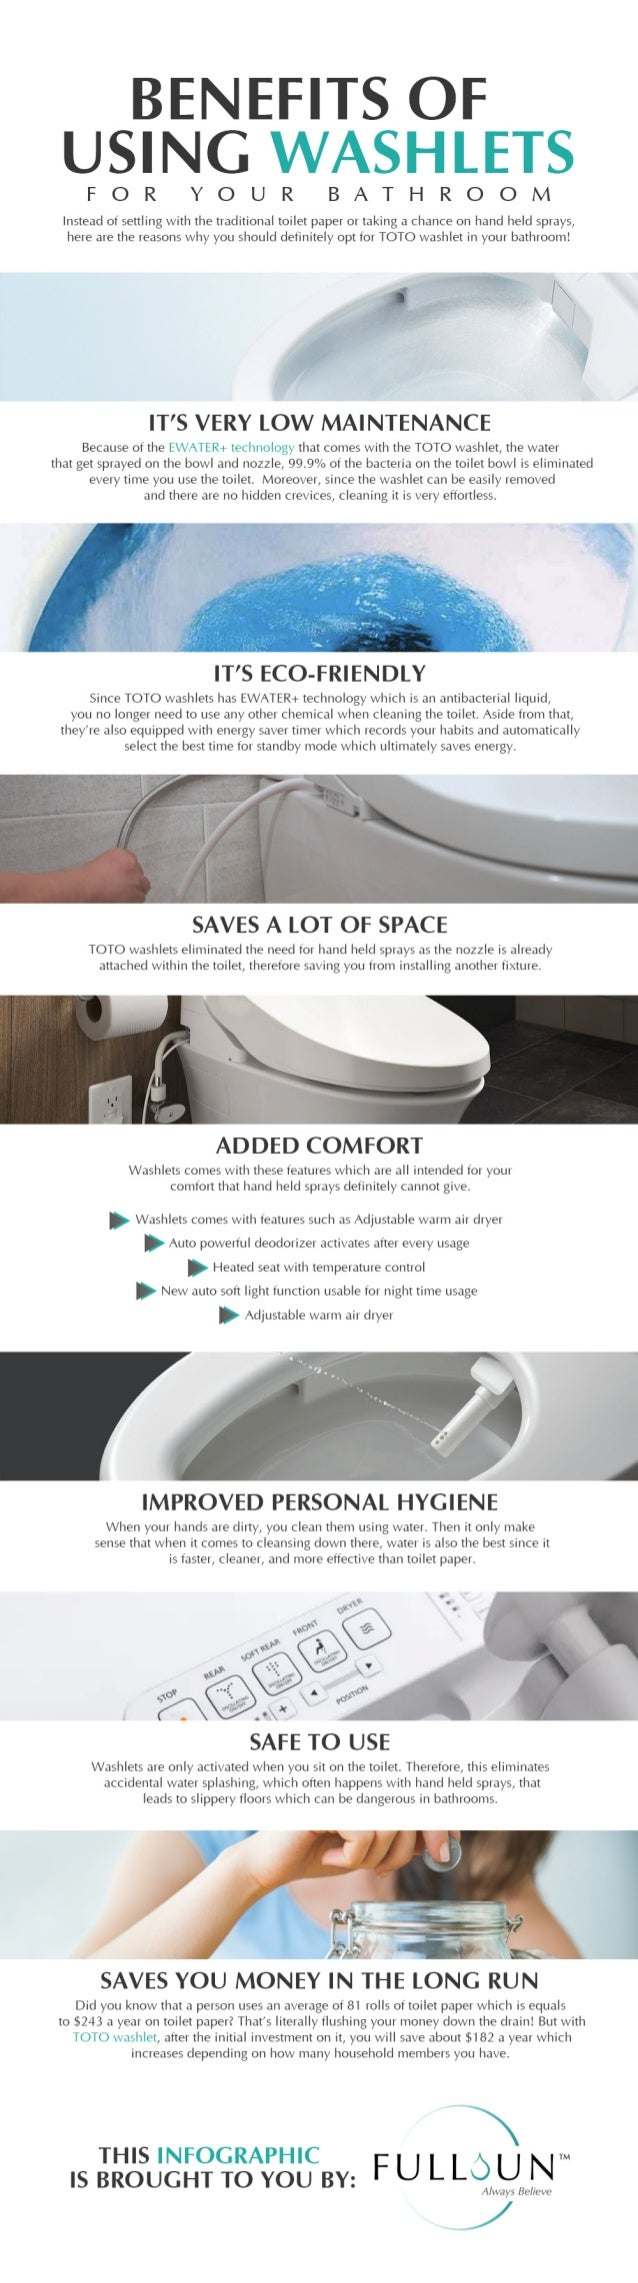 Benefits Of Using Washlets For Your Bathroom